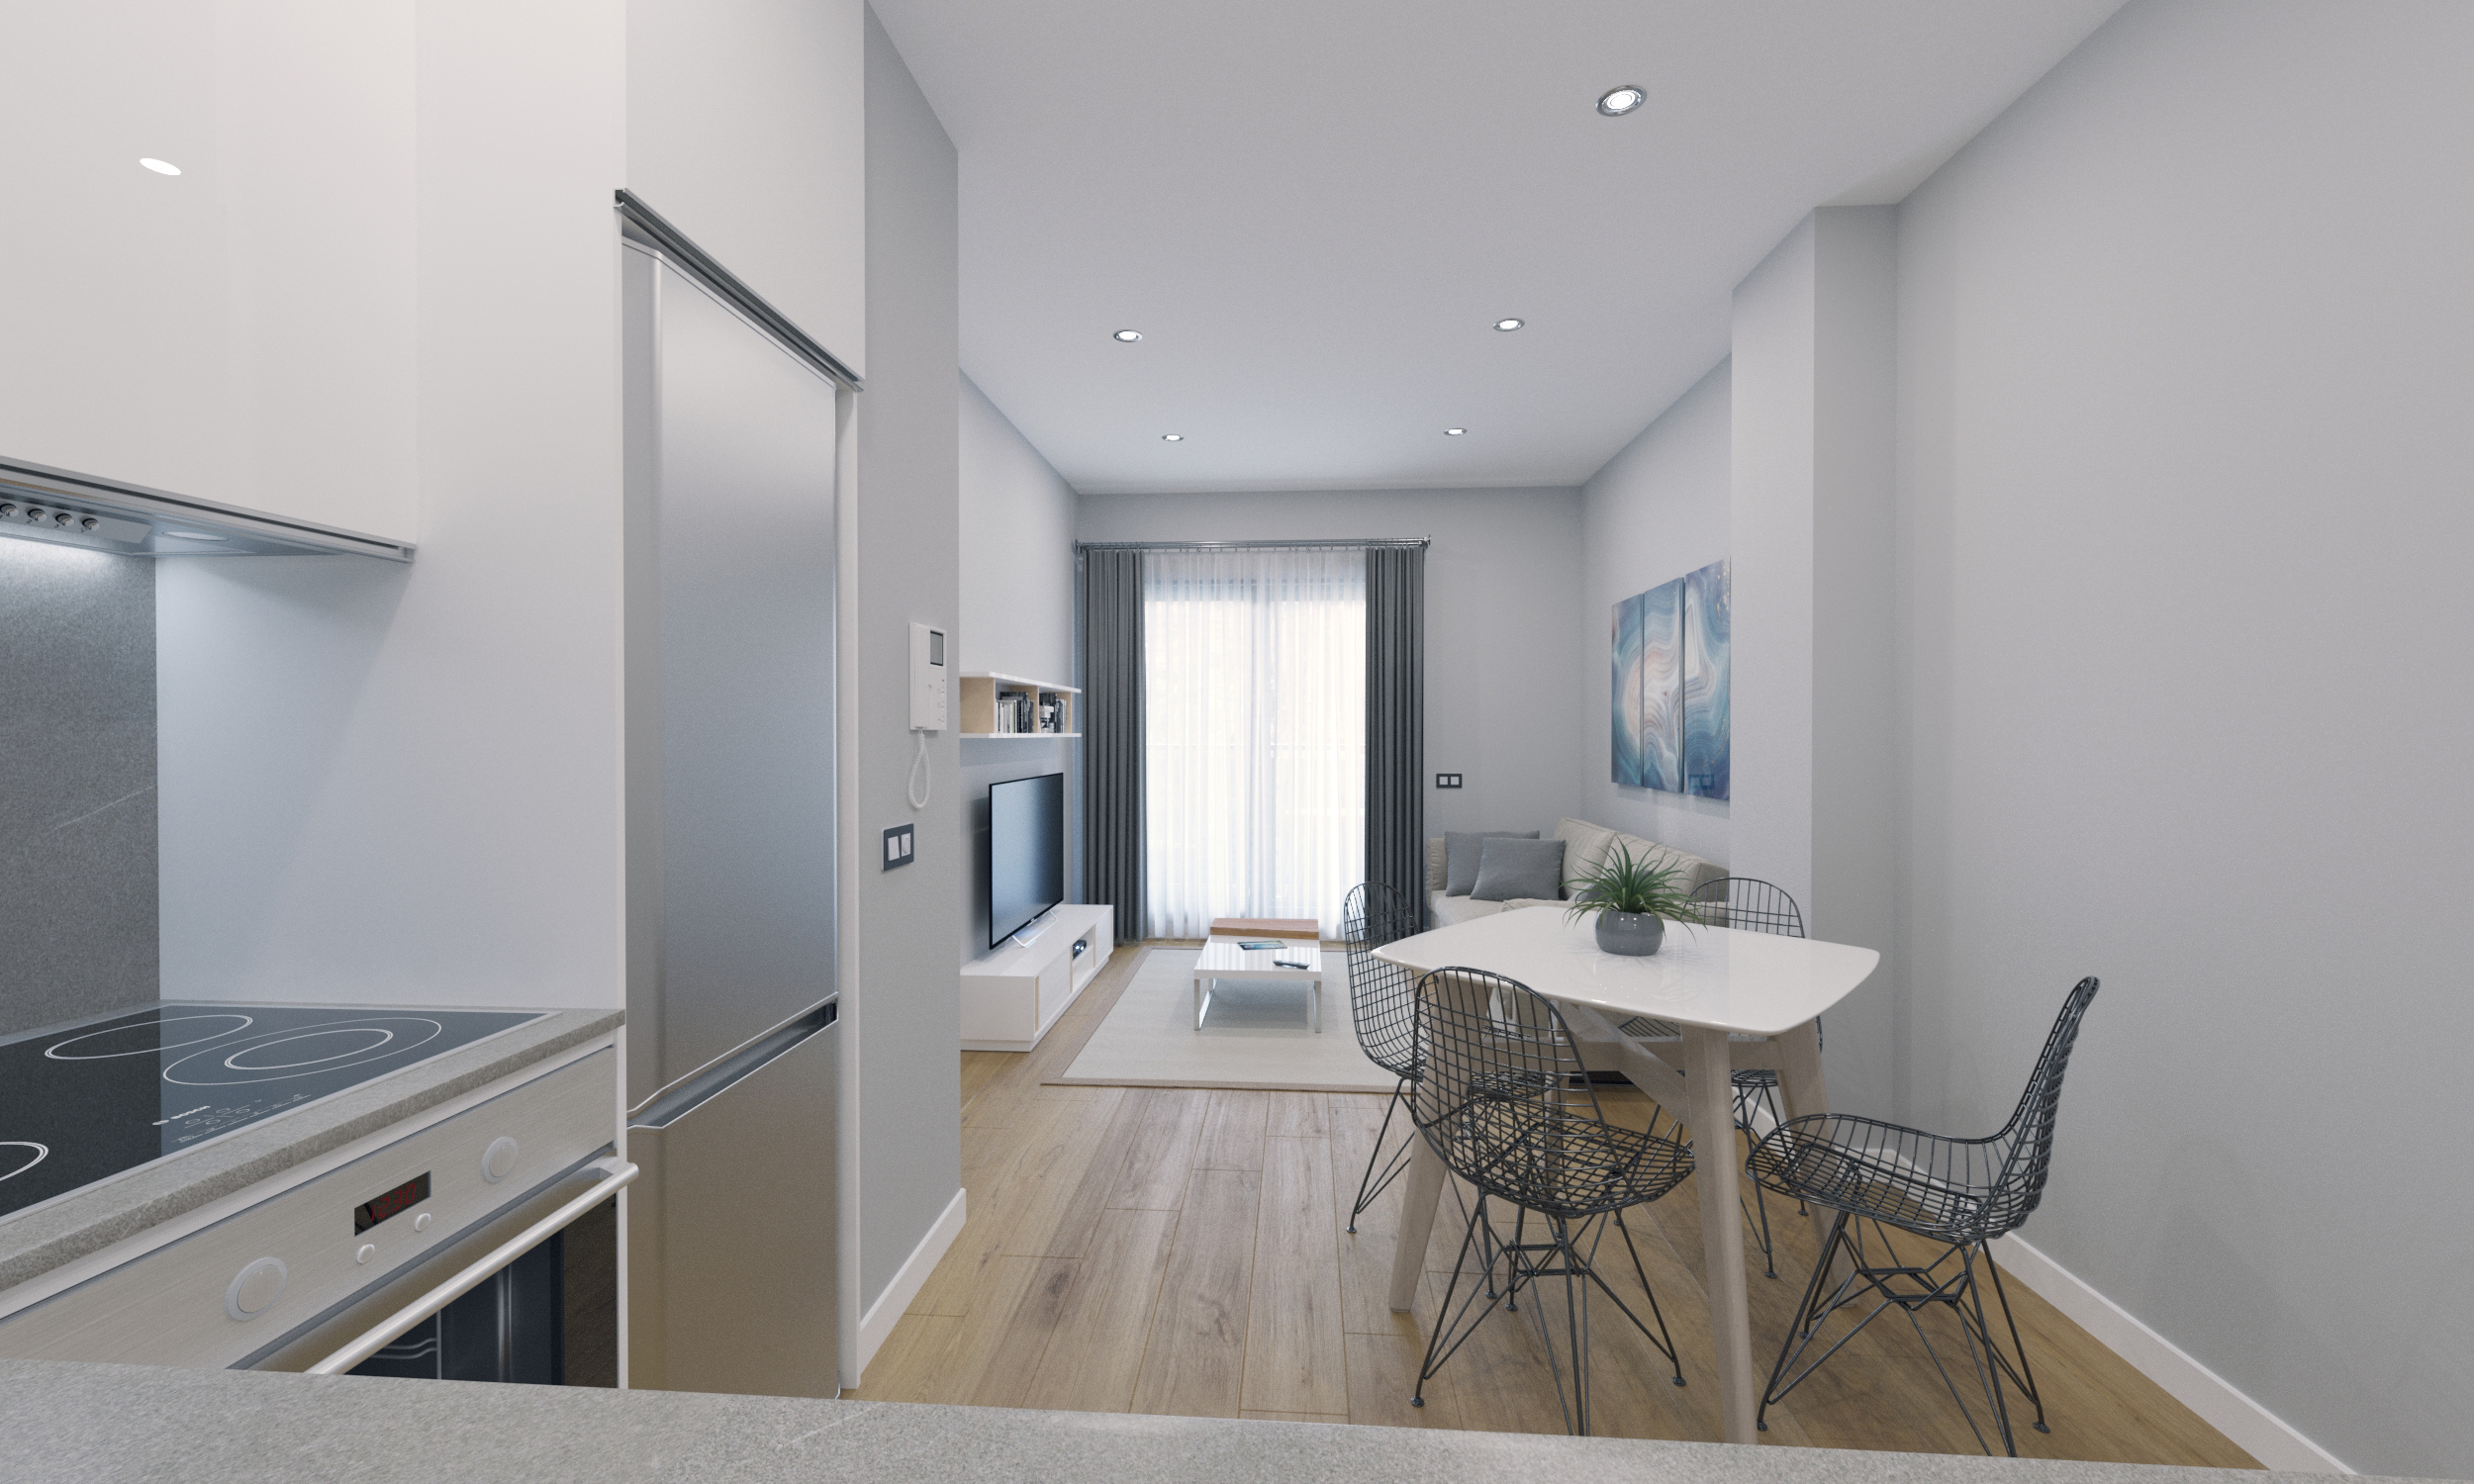 Apartment,For Sale,1155